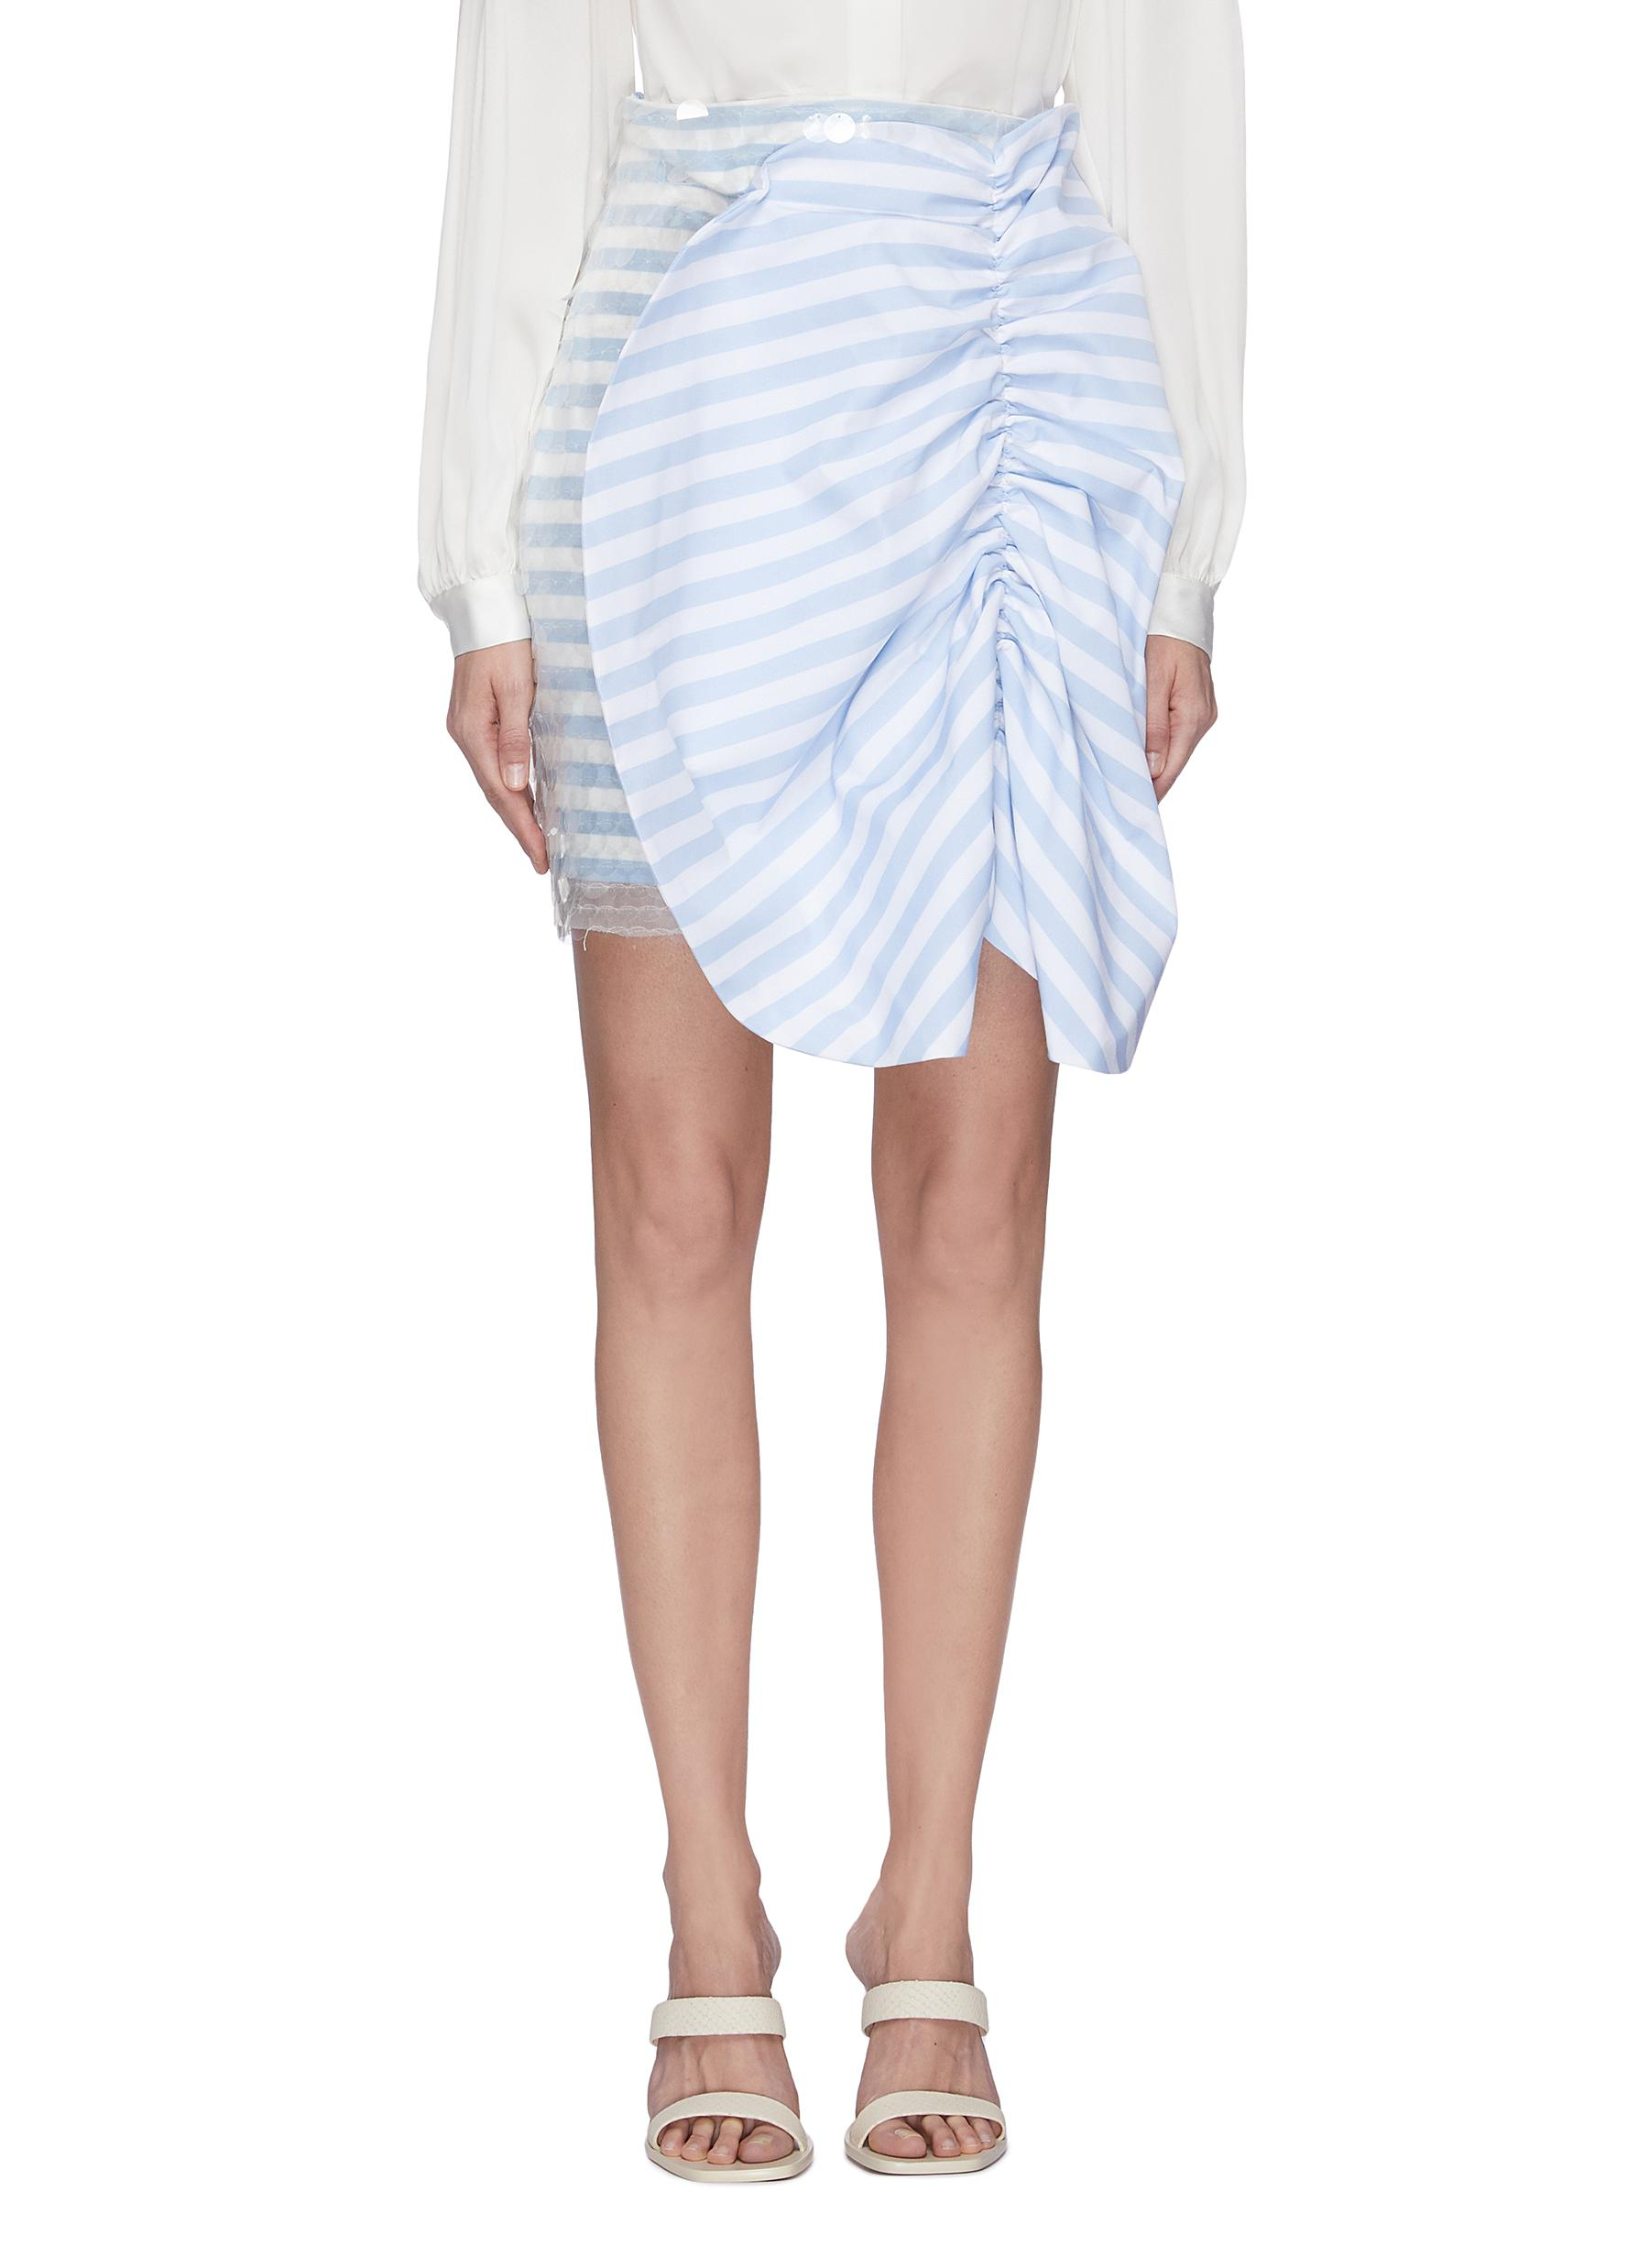 shop Leal Daccarett 'Flippa' bow front stripe sequin mini skirt online